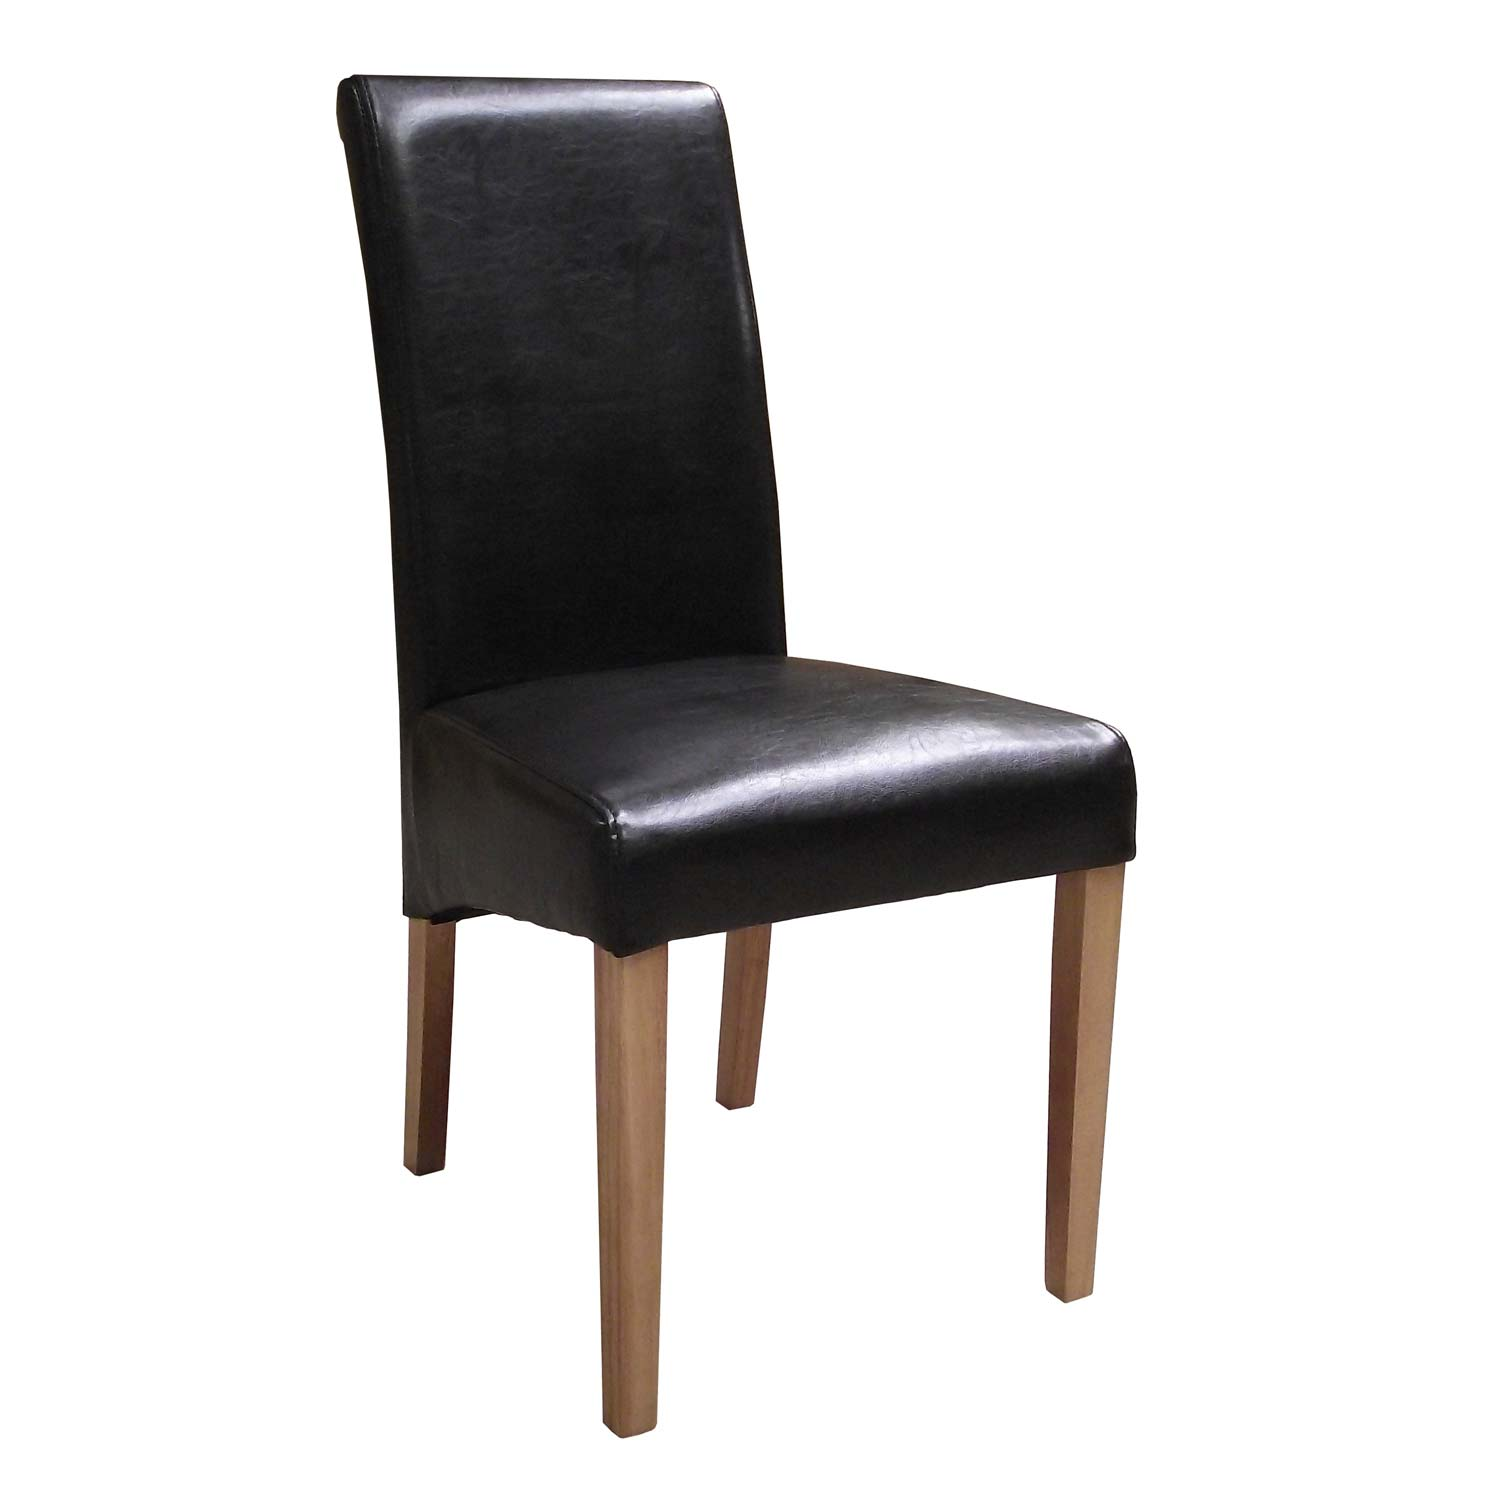 Brown faux leather dining chairs countryside pine and oak for Faux leather dining chairs